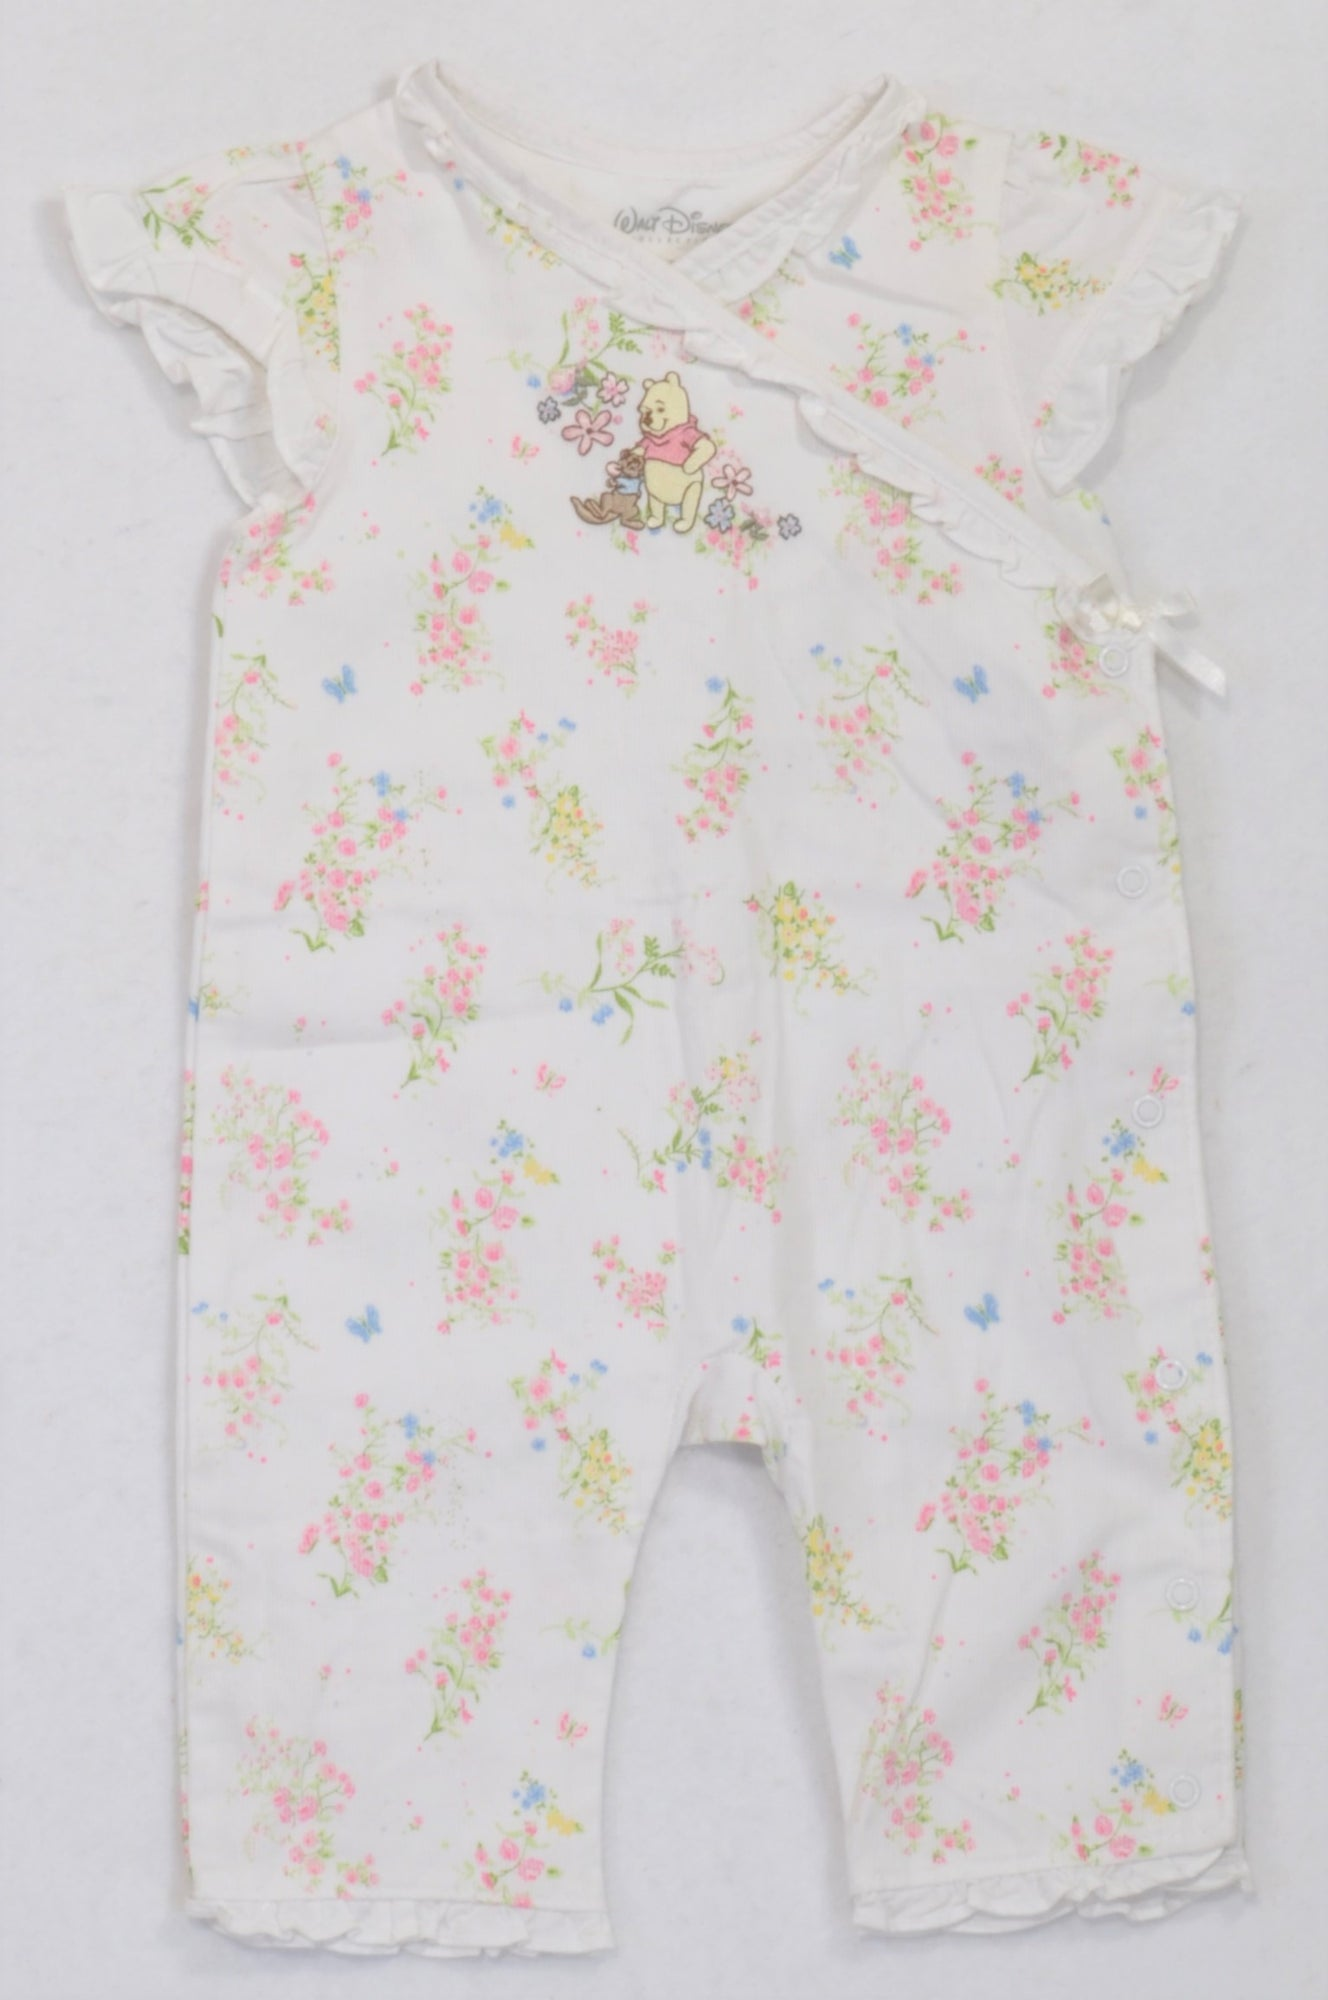 674f358eb6d0 Disney Floral Winnie the Pooh Embroidered Ribbed Romper Girls 6-9 mont –  Once More